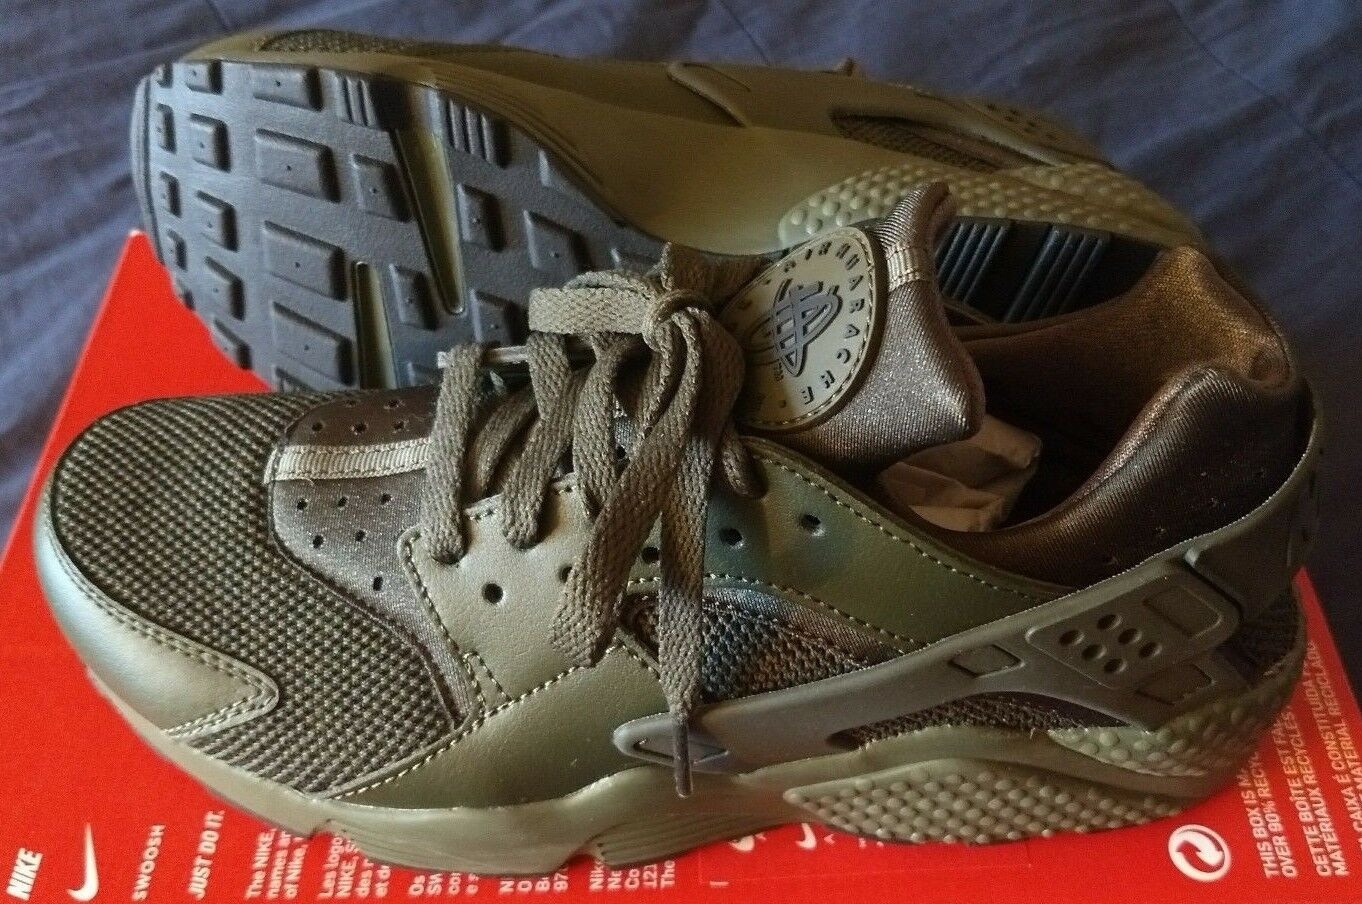 Nike size Air Huarache Cargo Khaki green black men's shoe size Nike 9 NEW 318429 308 42c1c2